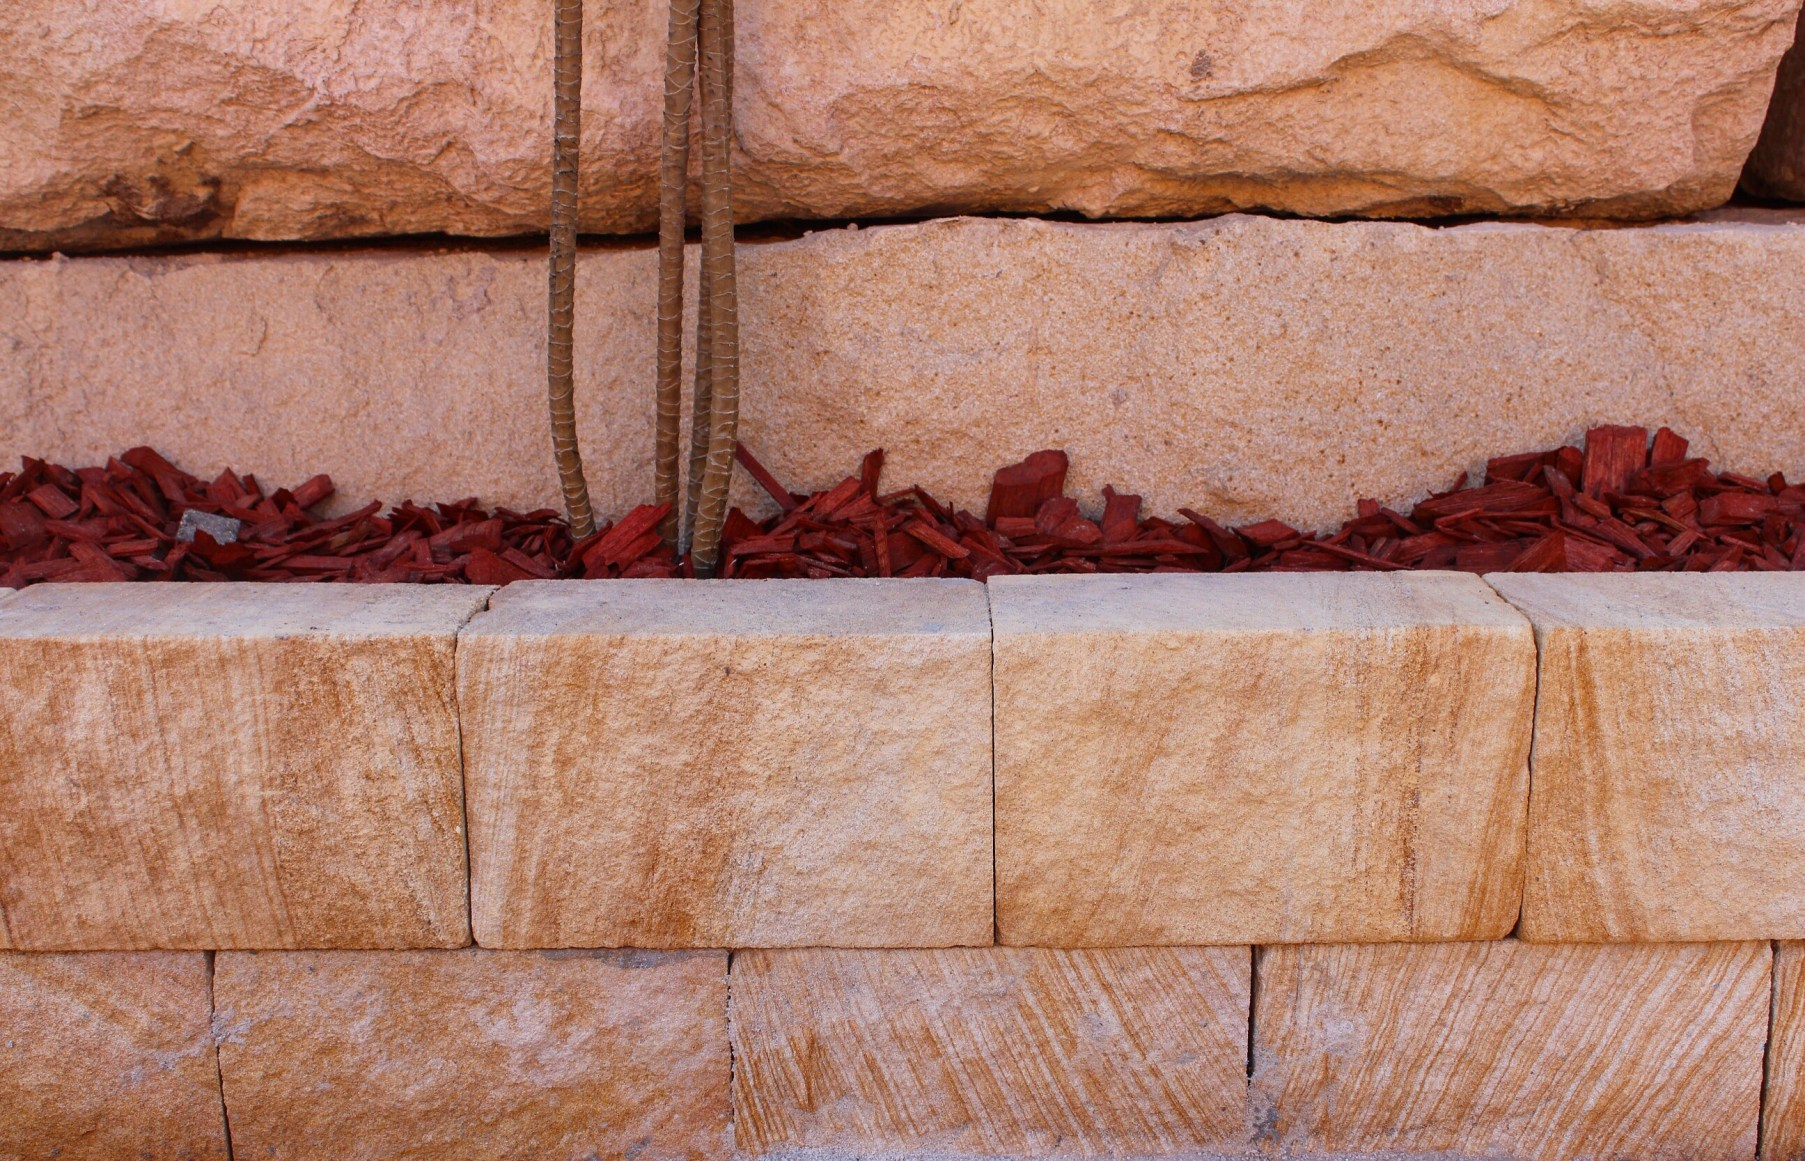 landscape design of a retaining wall and garden edging use Australian sandstone blocks